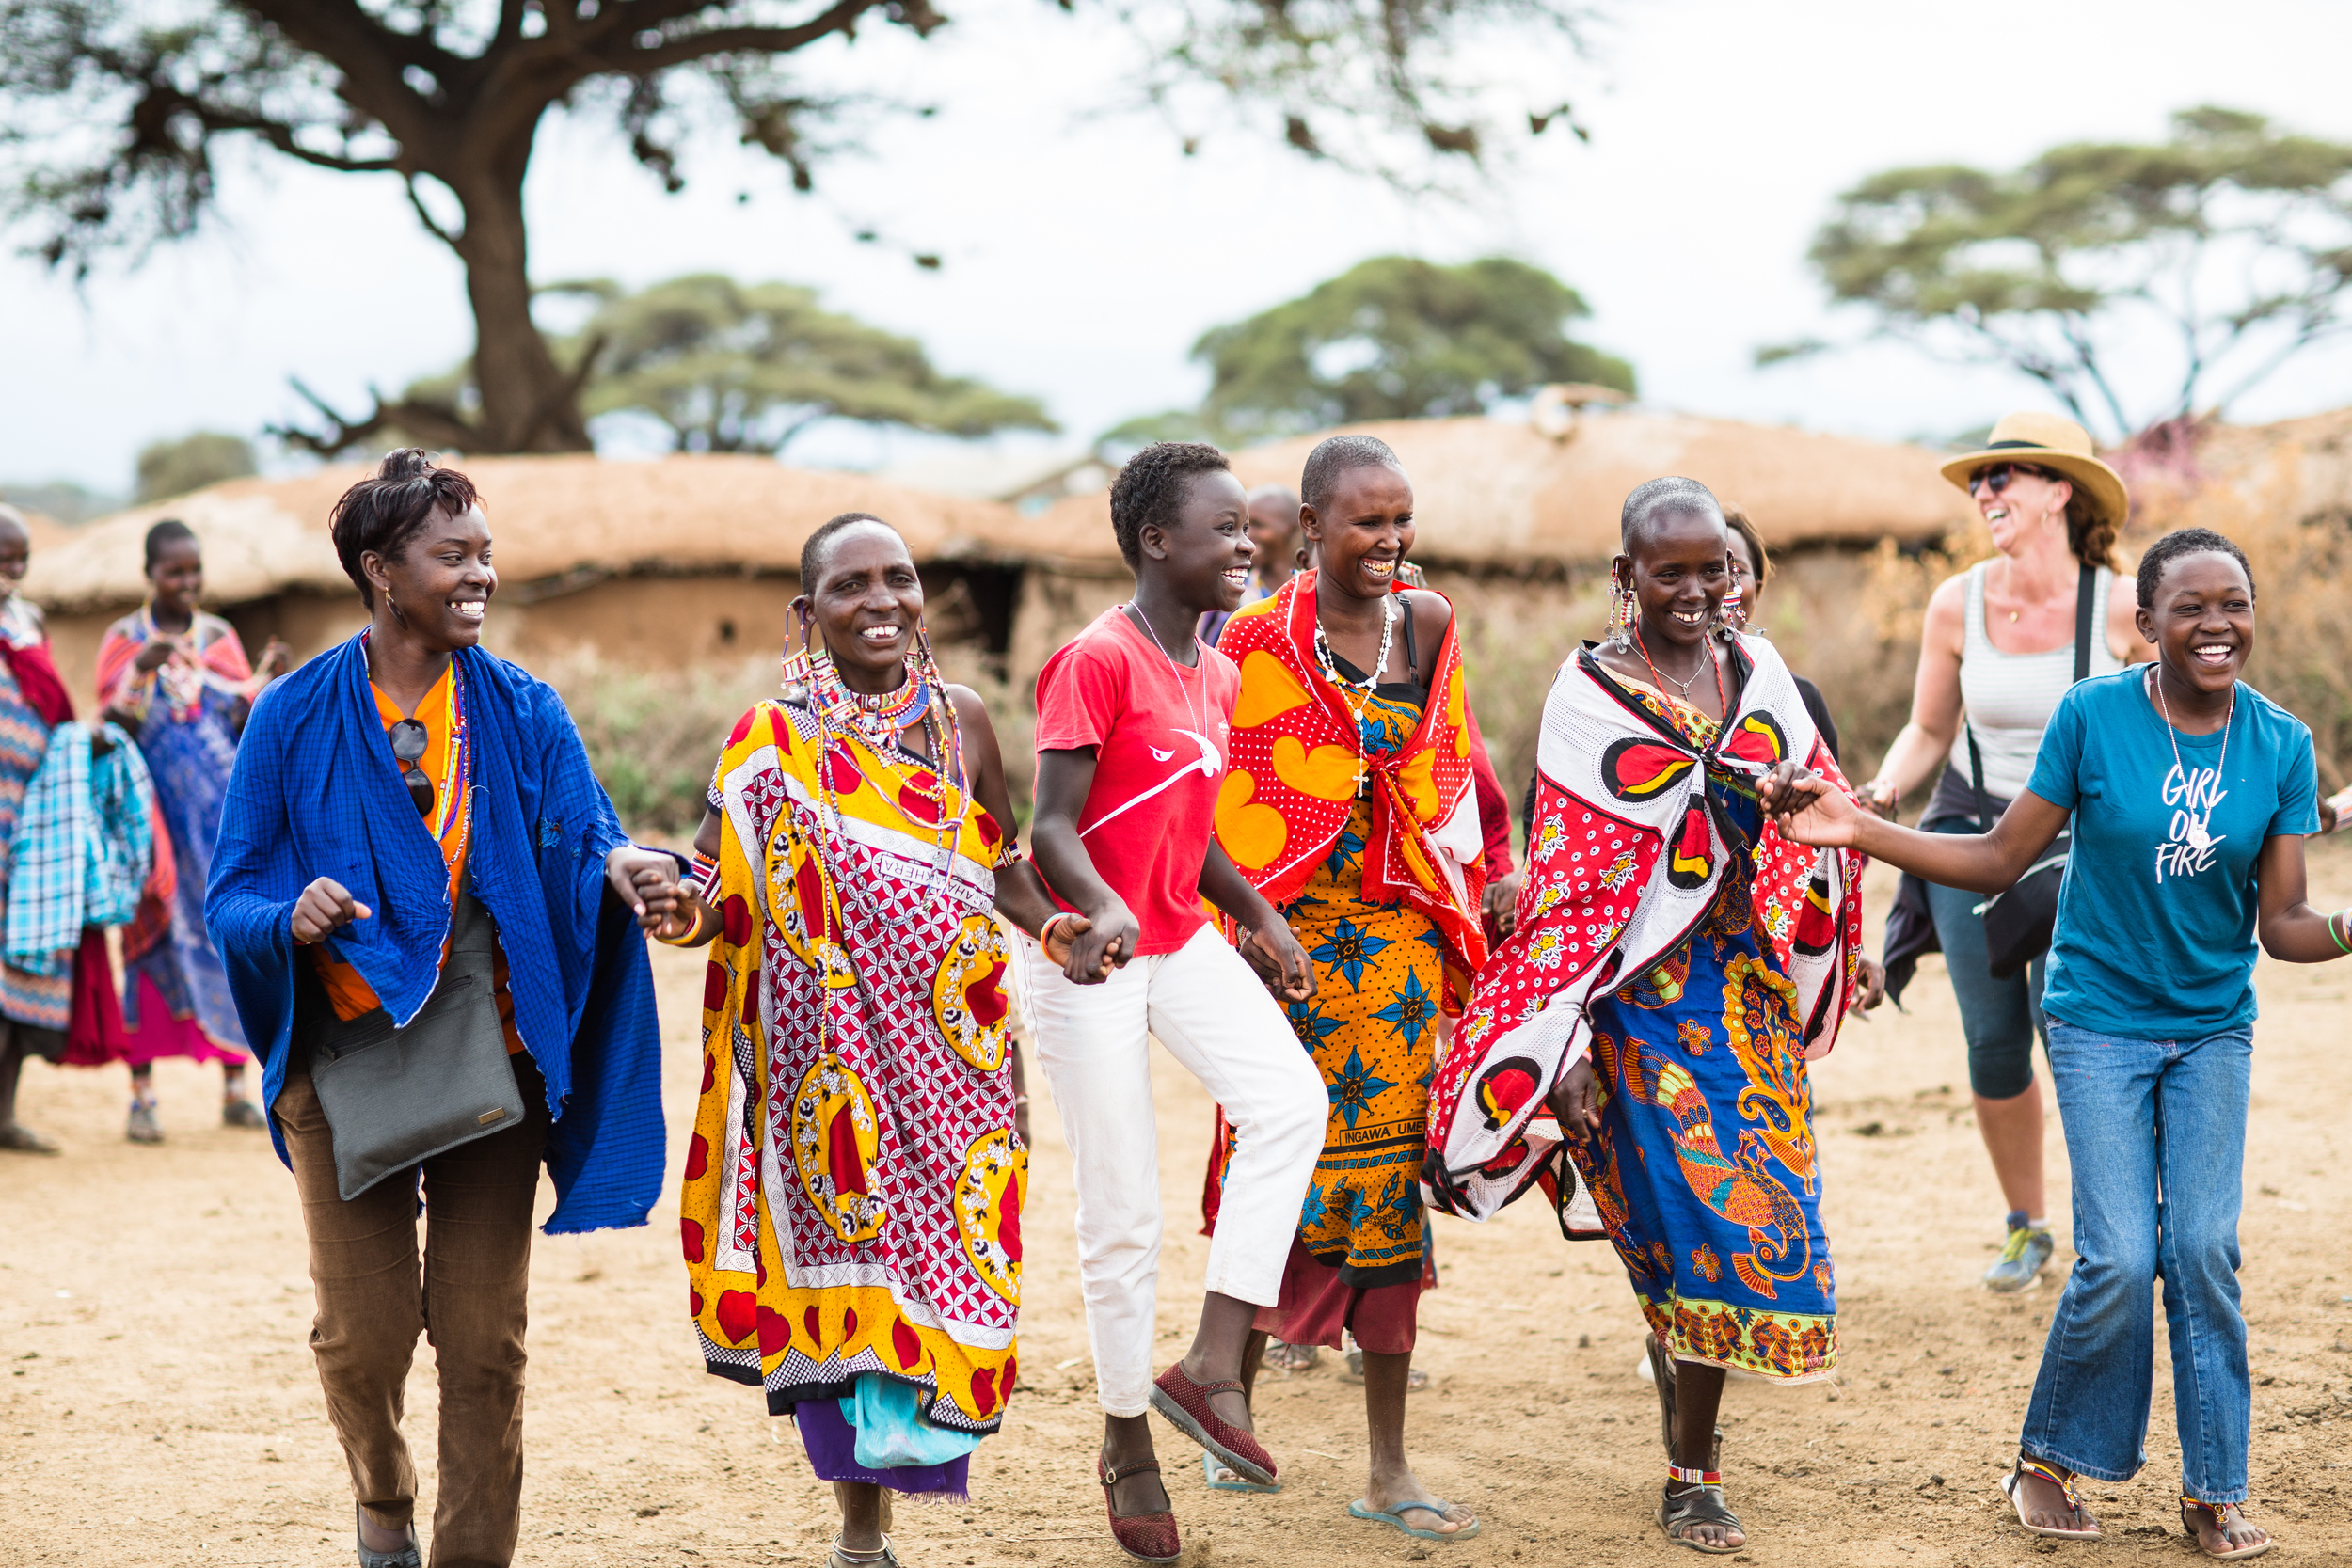 20141224_MaasaiVillage-043-2.jpg